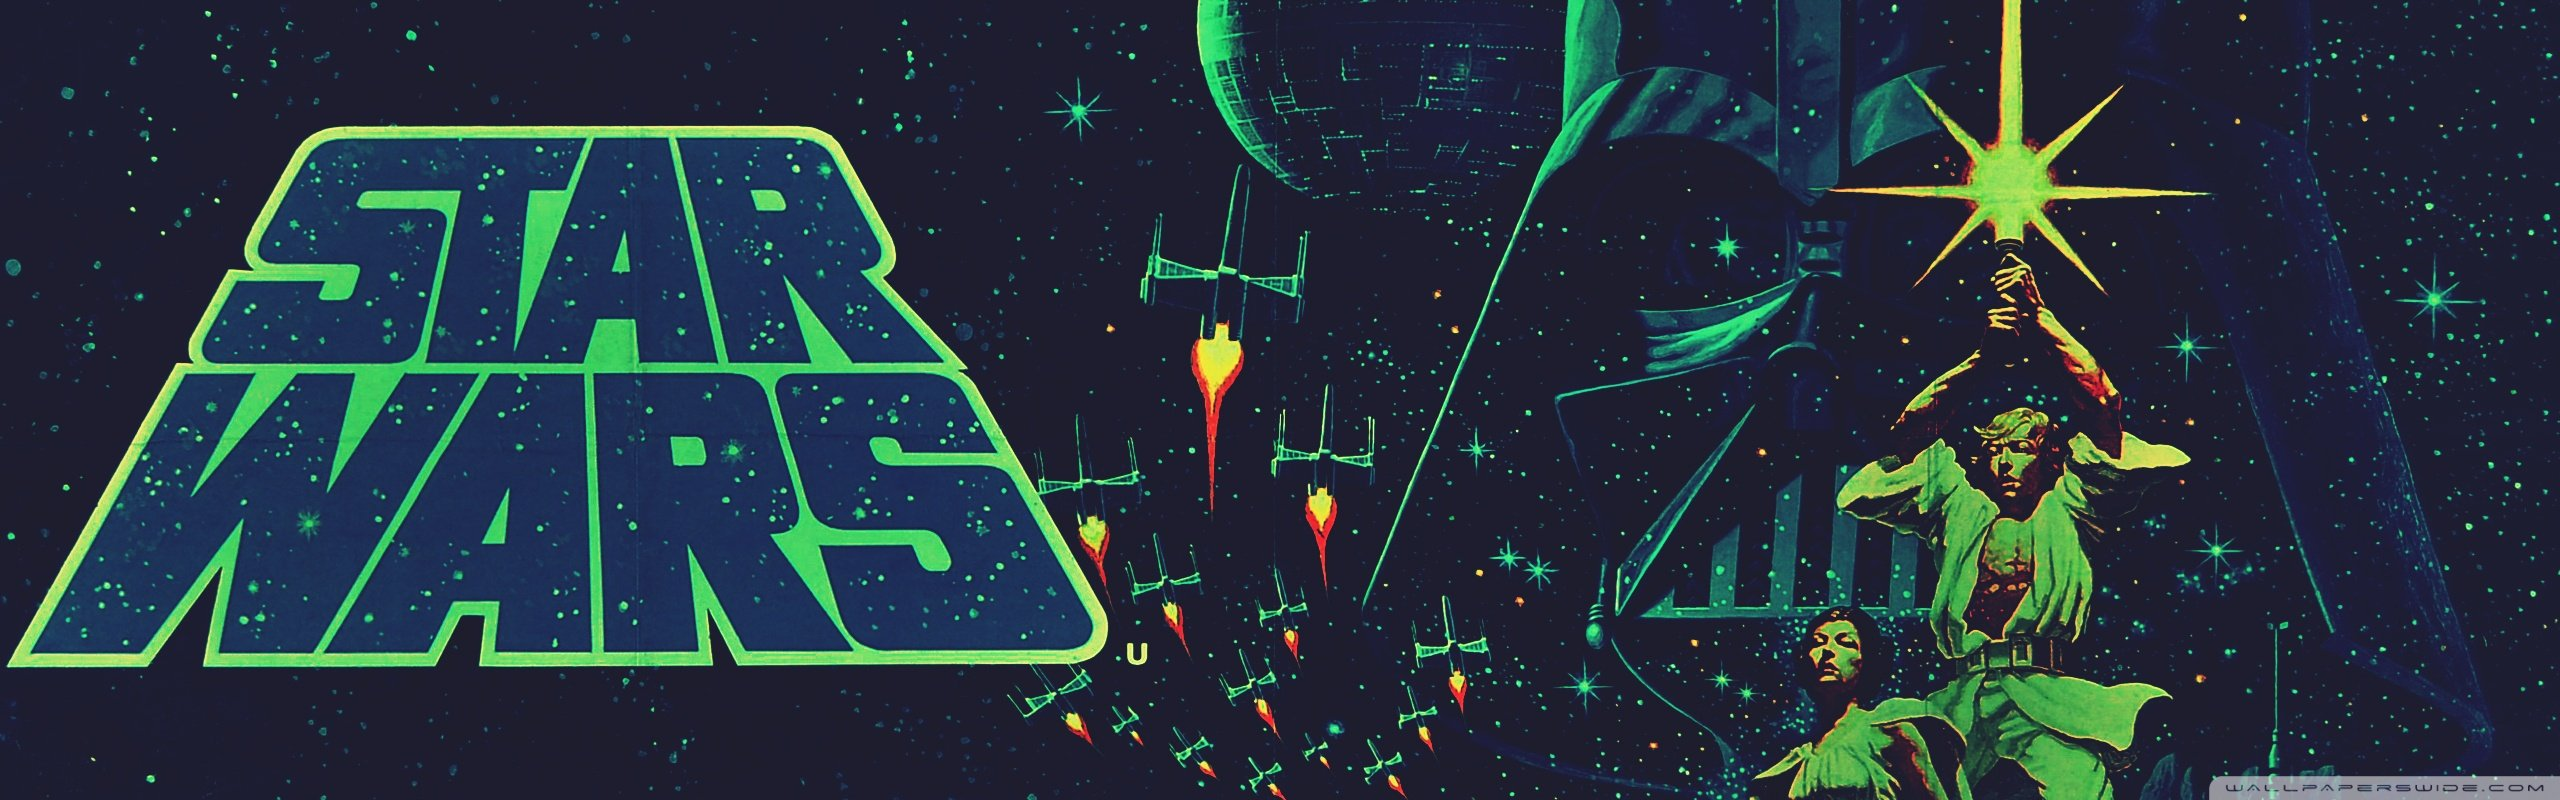 47 Dual Screen Wallpaper Star Wars On Wallpapersafari